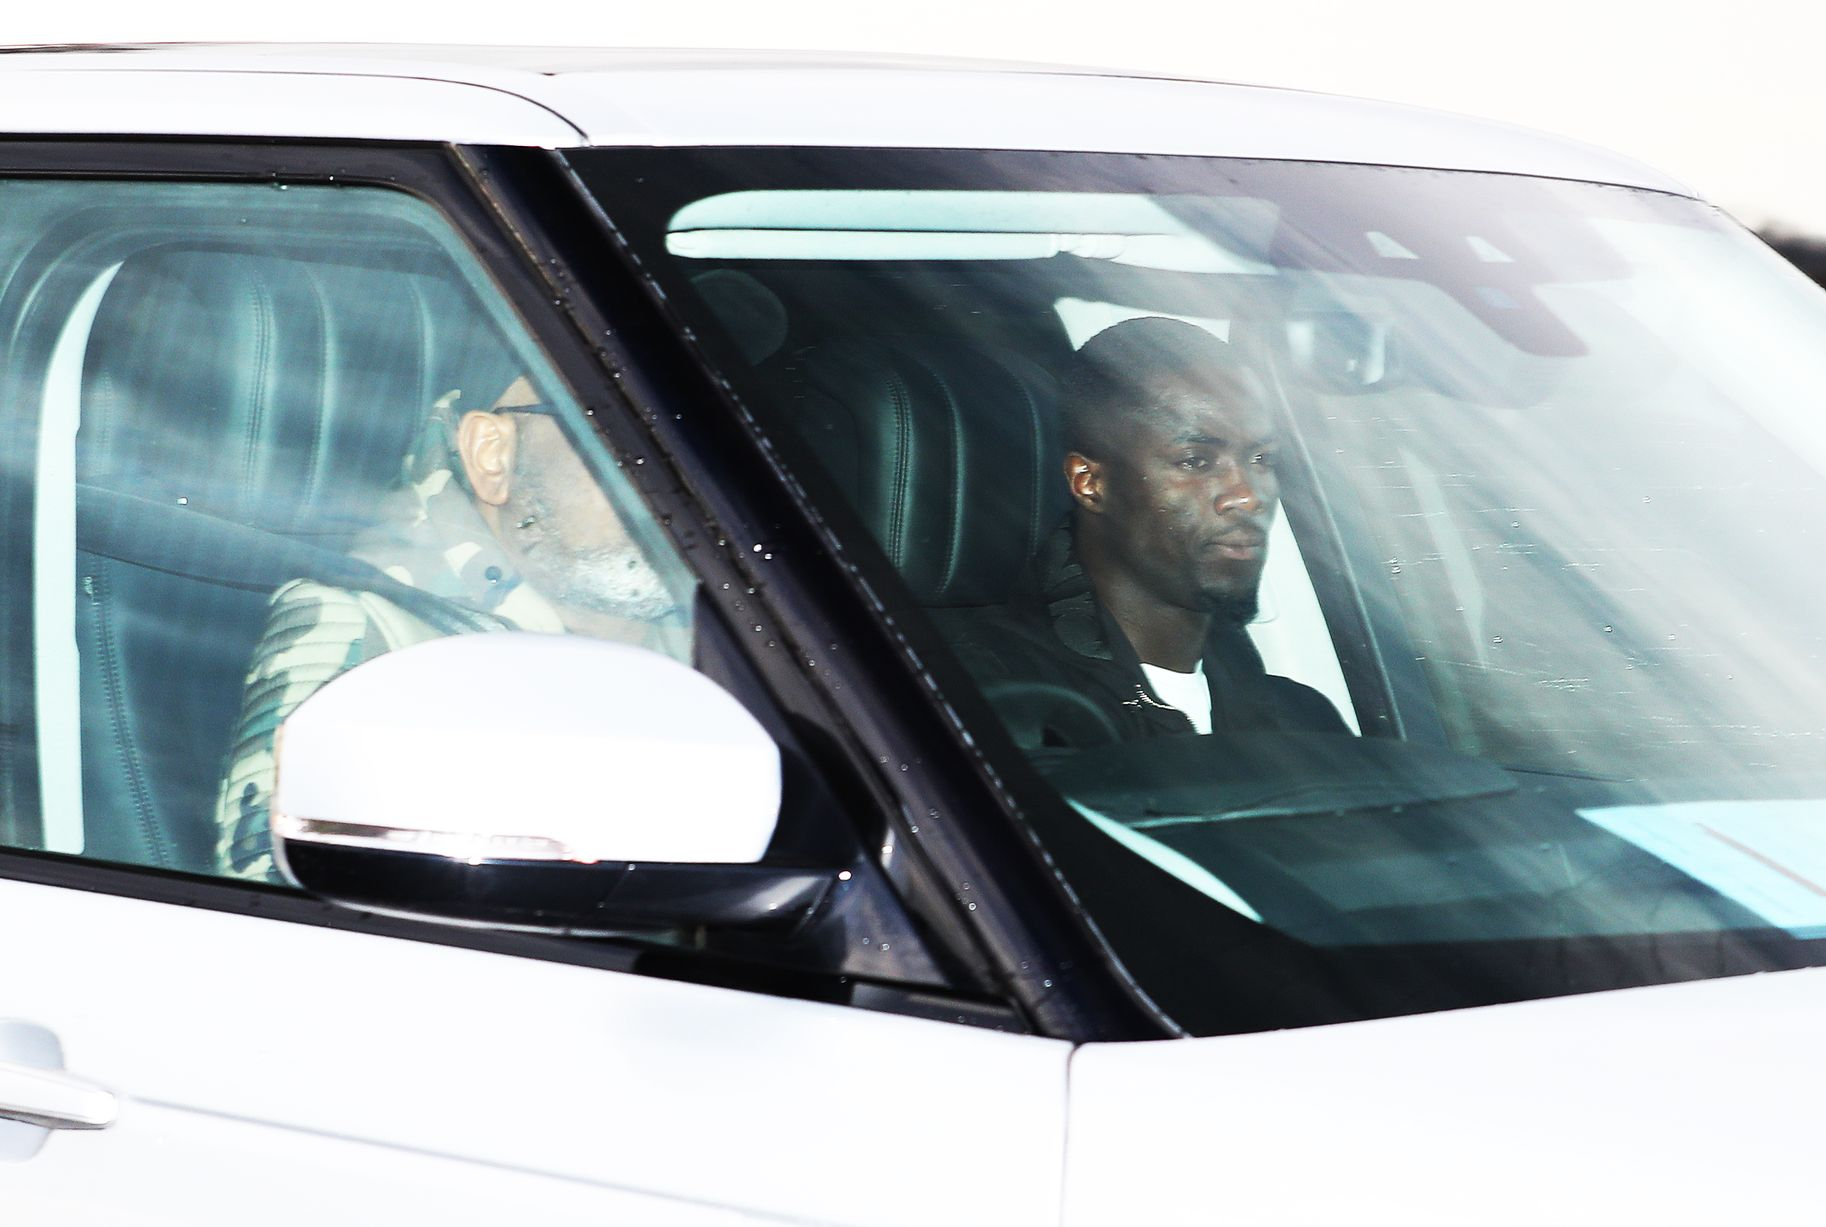 Pictures: Manchester United players arrive for training on eve of Watford fixture - Bóng Đá